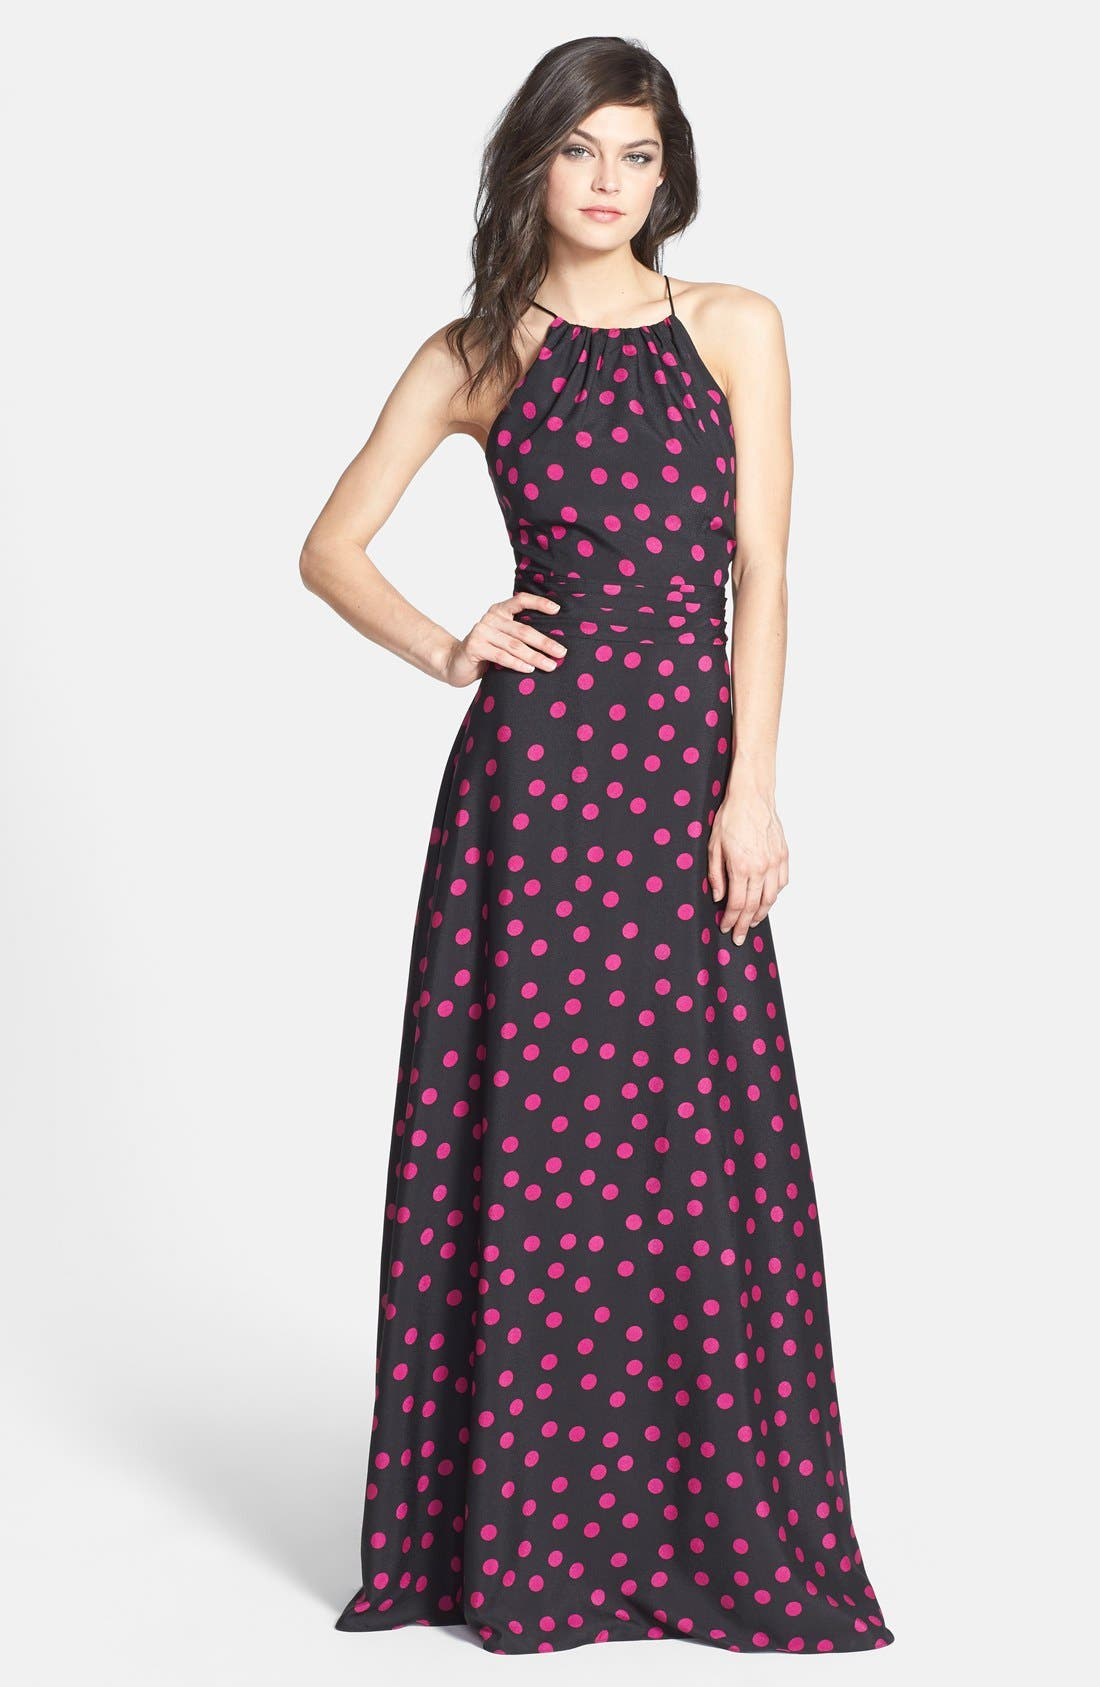 Main Image - Hailey by Adrianna Papell Polka Dot Halter Gown